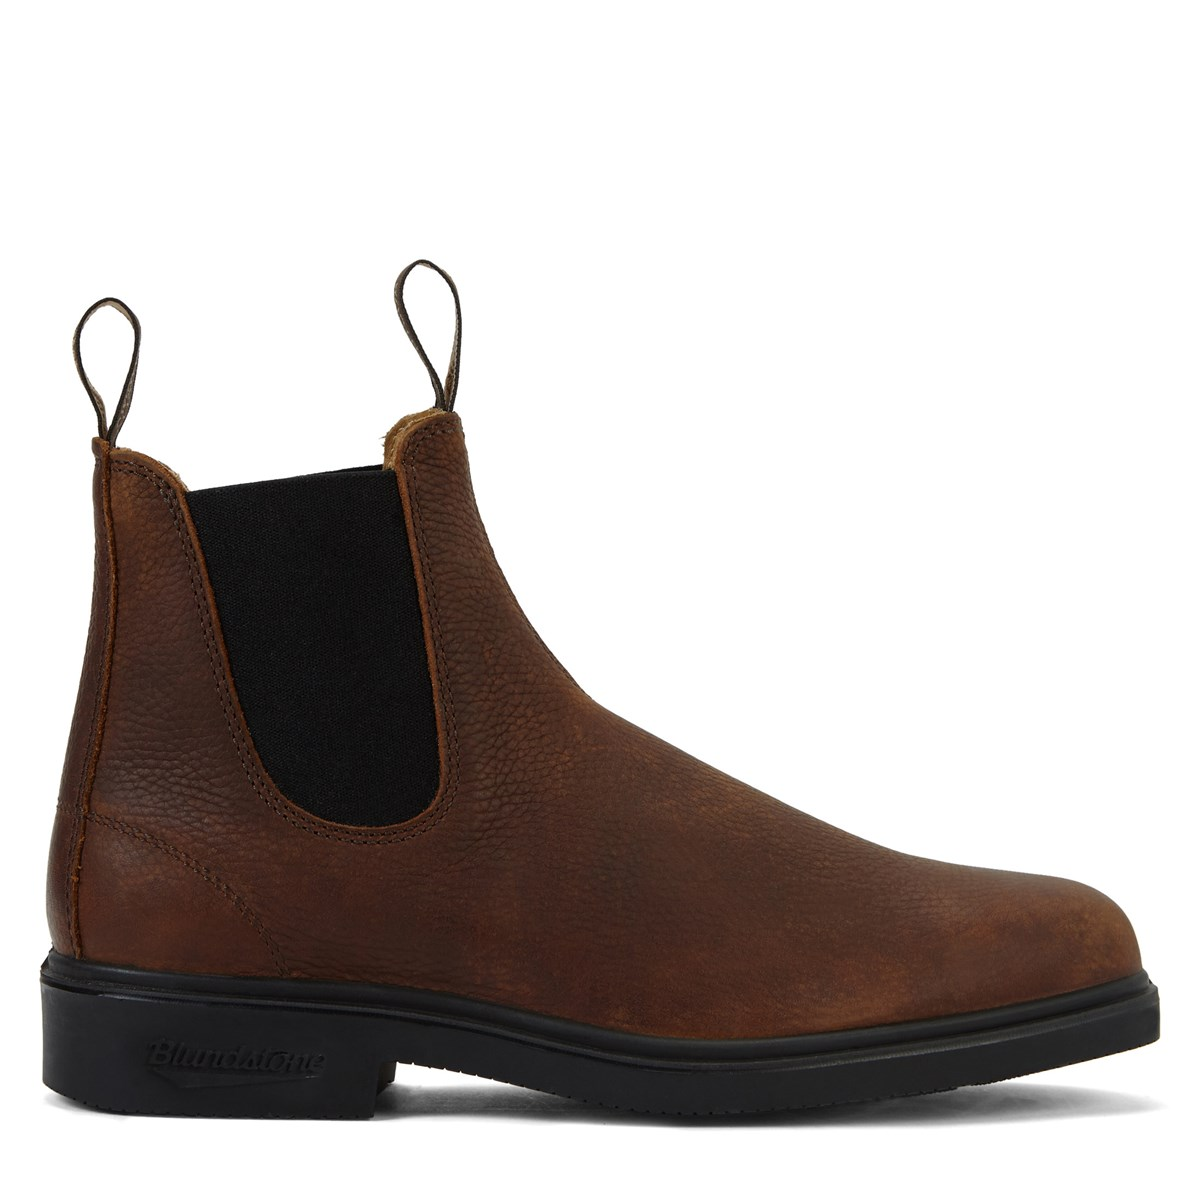 1313 Chisel Toe Chelsea Boots in Brown